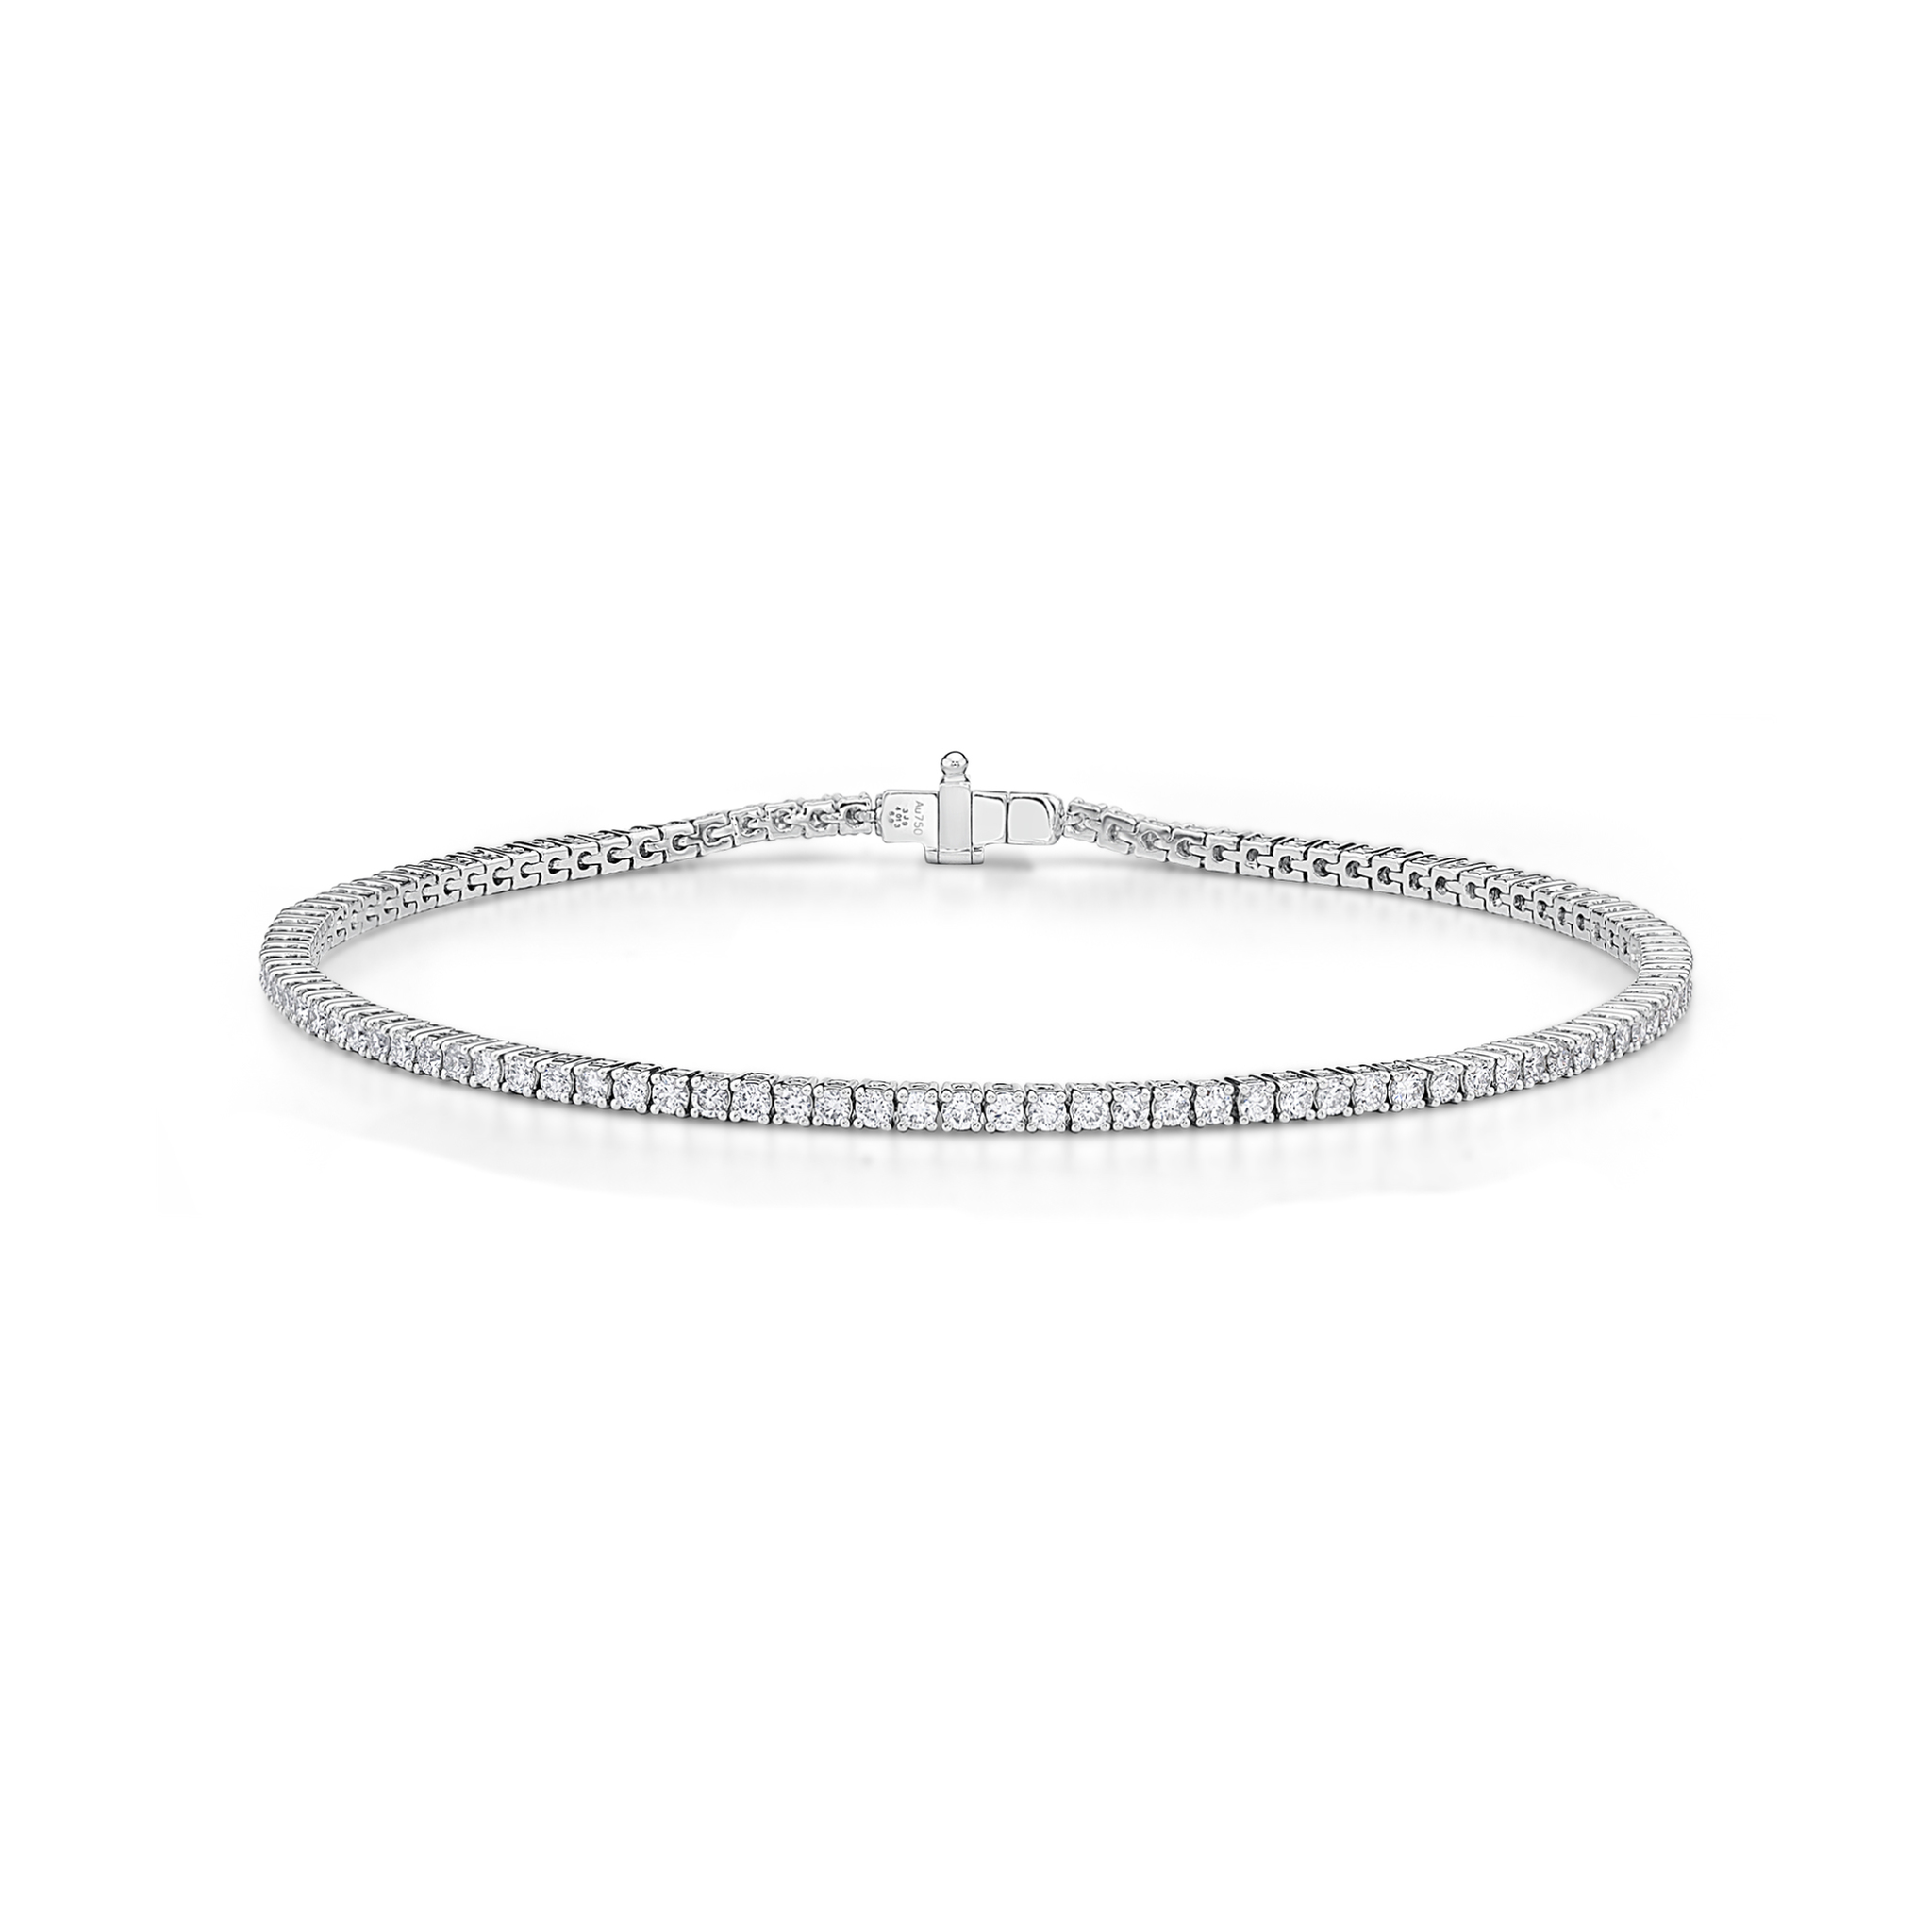 Memoire 18ct White Gold 2 Carat Diamond 4 Prong Tennis Bracelet